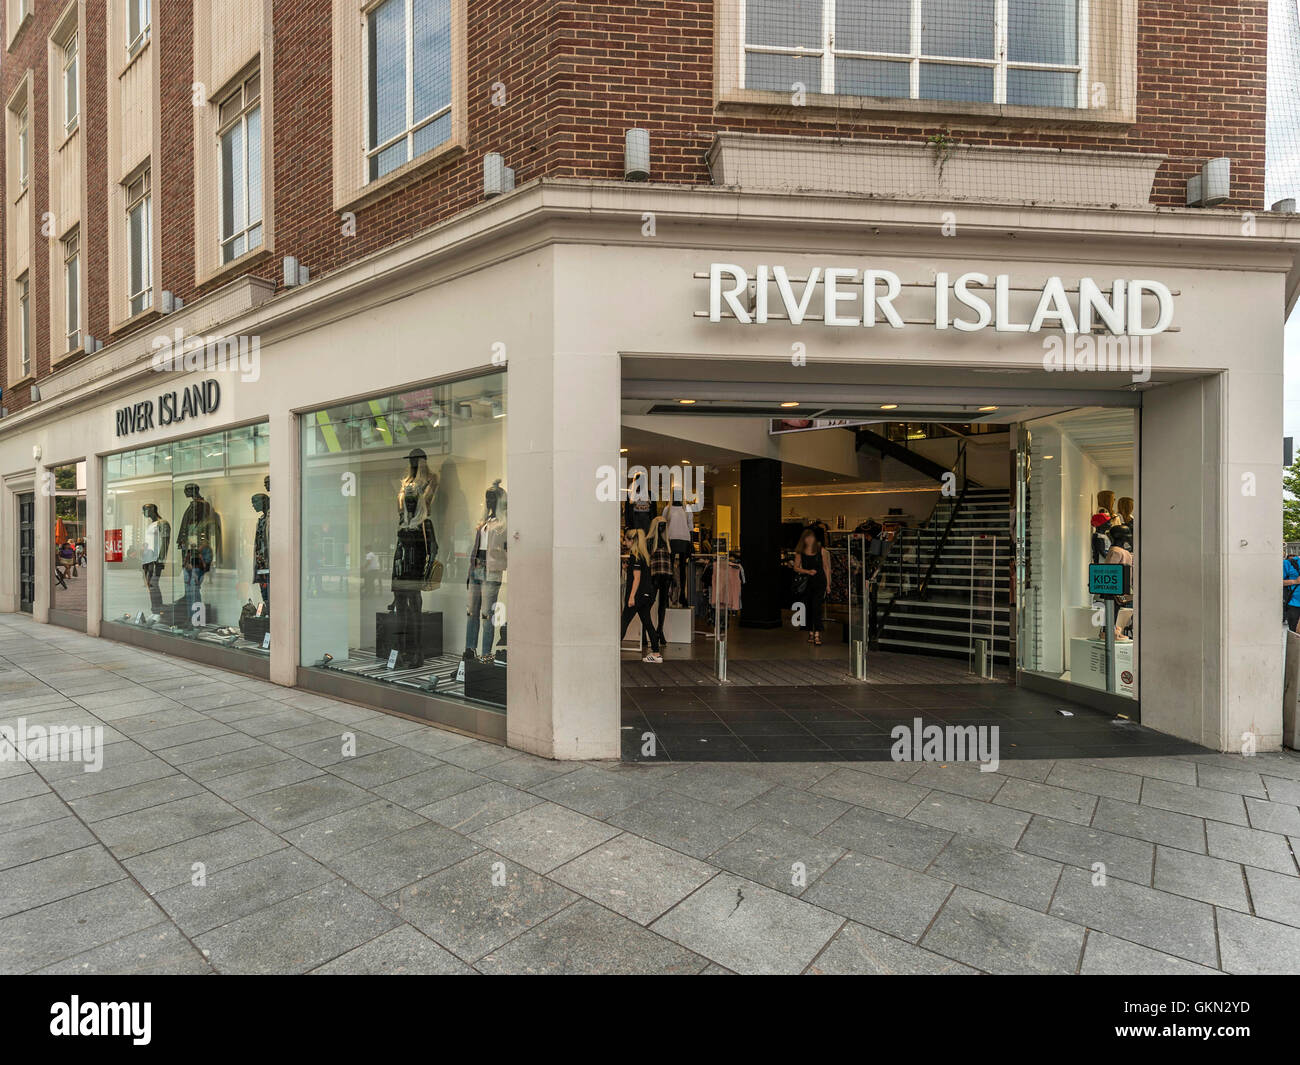 River Island Store Stock Photos & River Island Store Stock Images ...